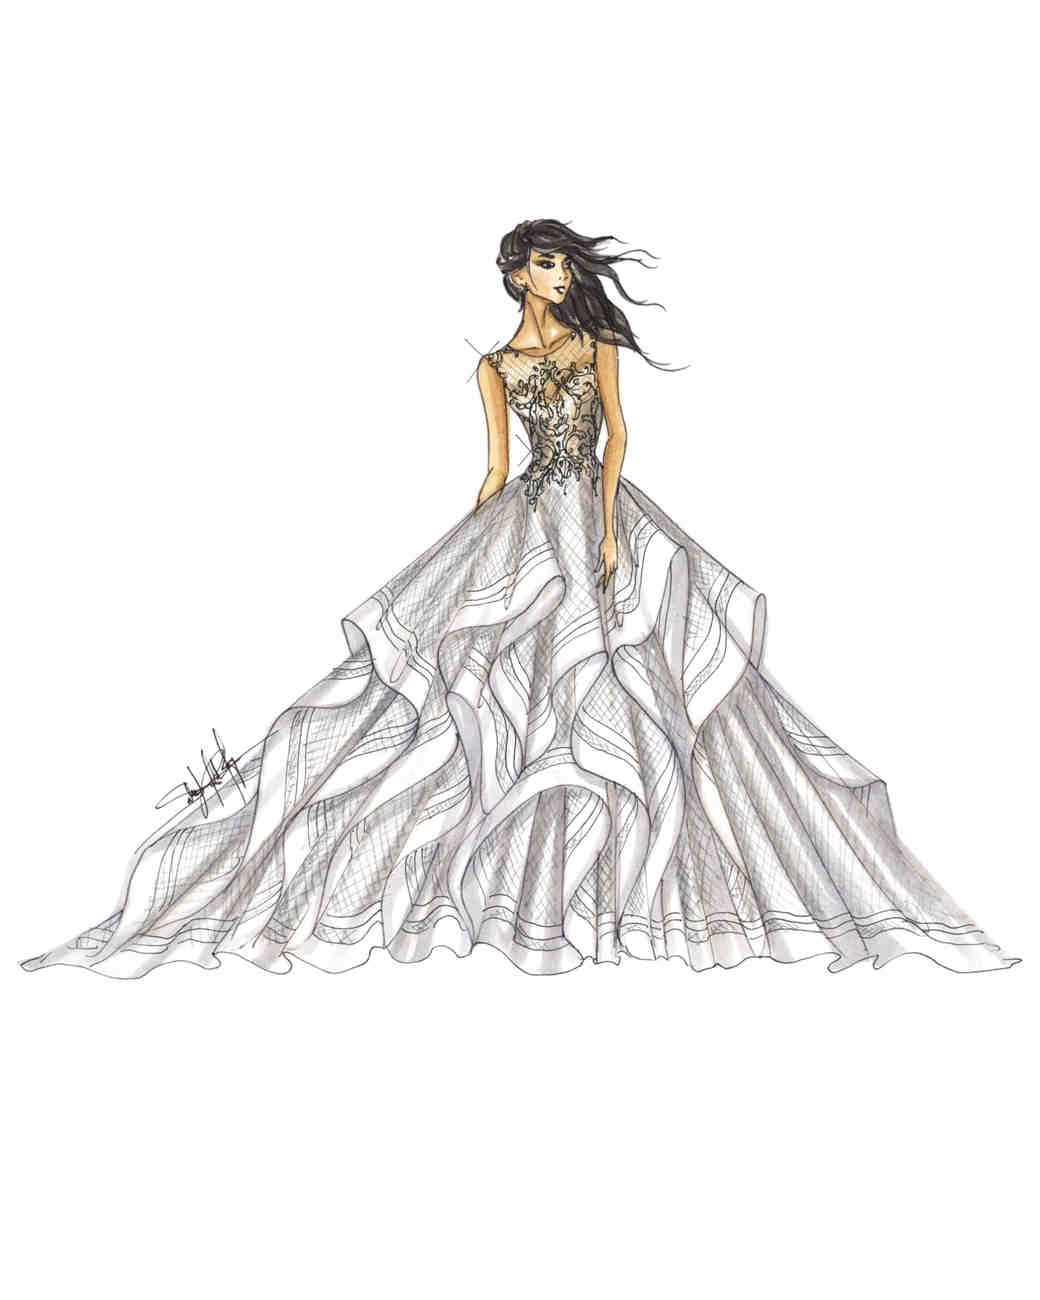 sottero and midgley wedding dress sketch